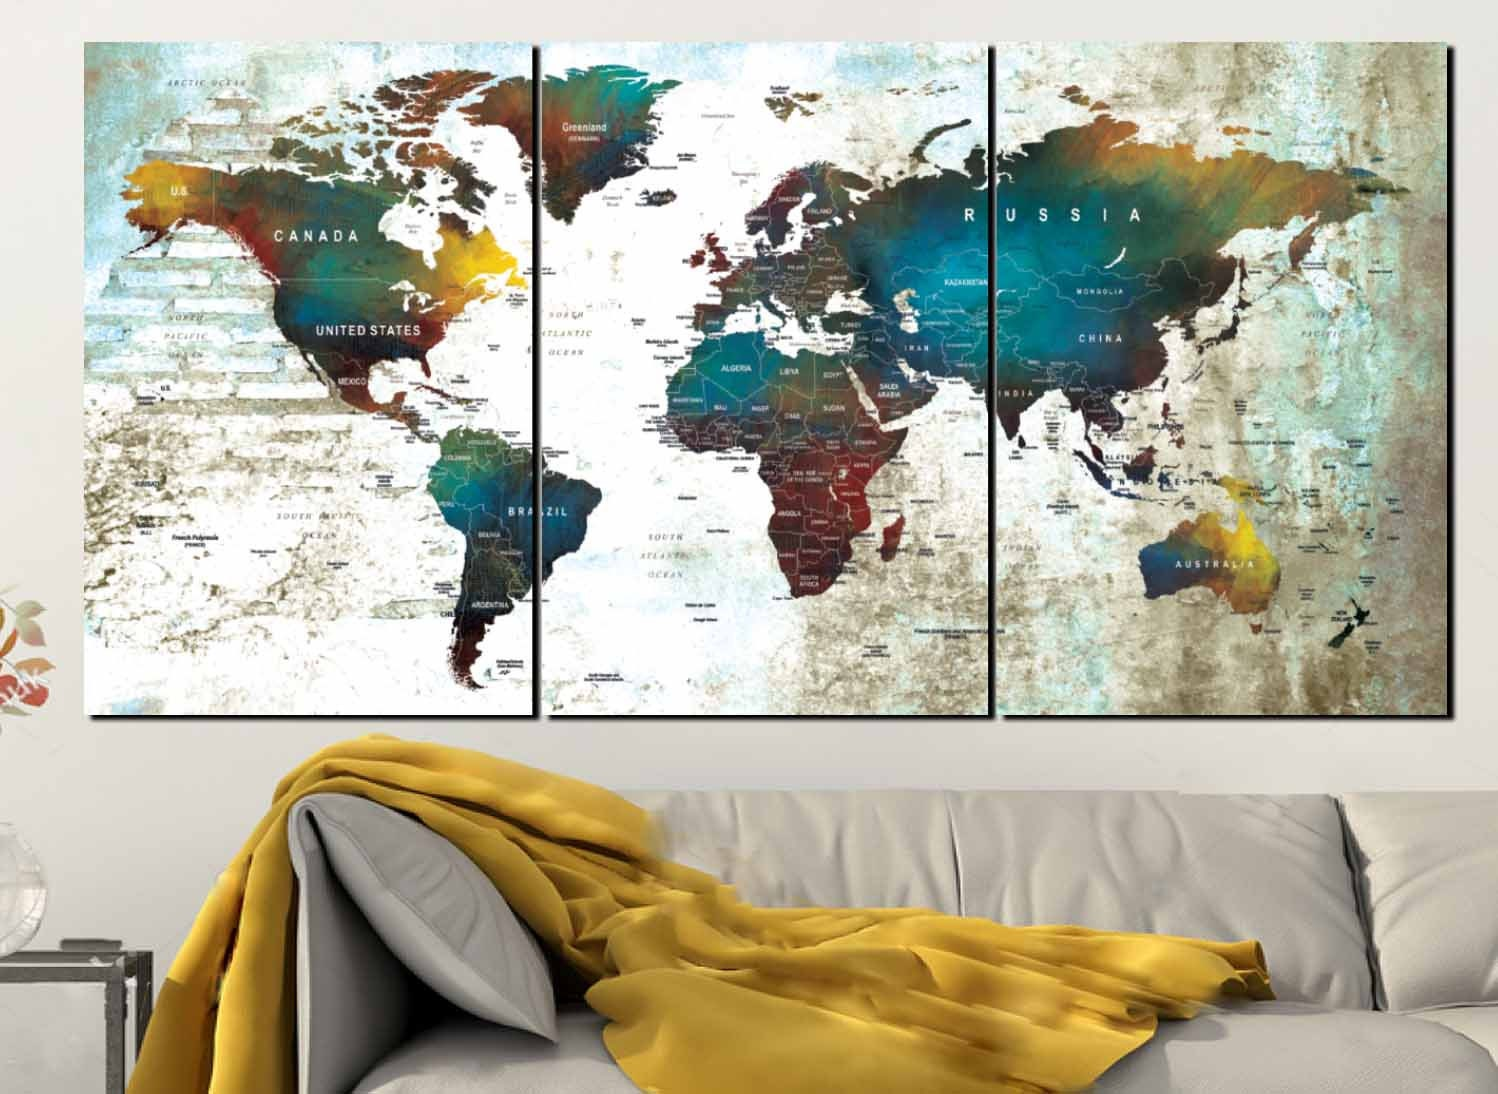 Large world map watercolor wall artpush pin map canvasworld map large world map watercolor wall artpush pin map canvasworld map canvas printworld map art printpush pin map canvas printtravel map art gumiabroncs Image collections